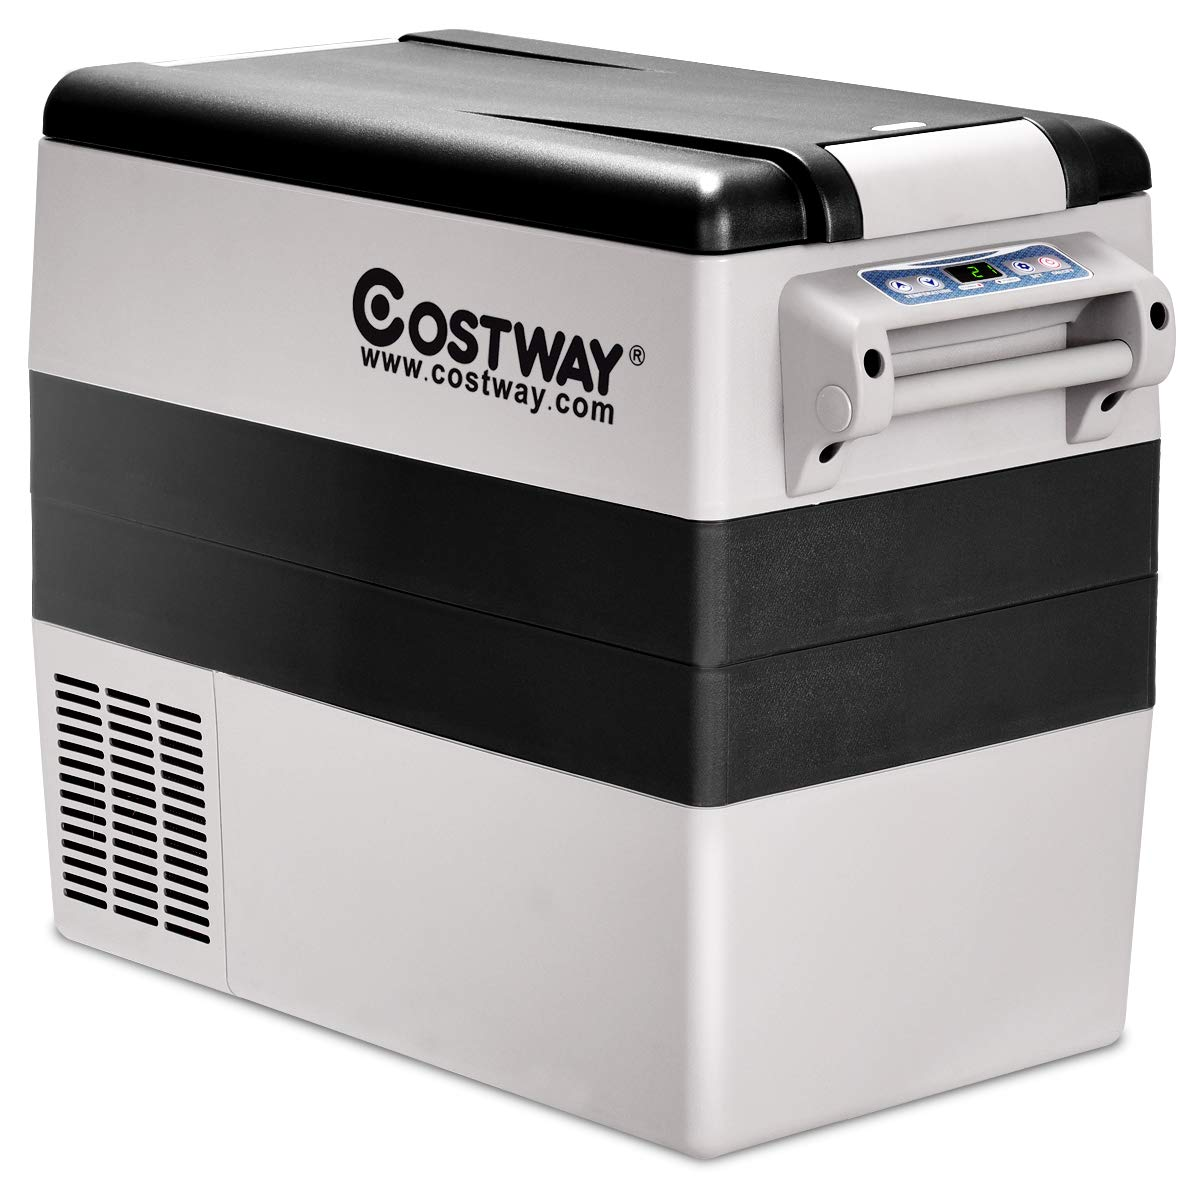 COSTWAY 54 Quart Portable Refrigerator/Freezer Compact Vehicle Car Mini Fridge Electric Cooler for Truck Party, Travel, Picnic Outdoor, Camping(-4°F to 50°F)(Black and Grey)